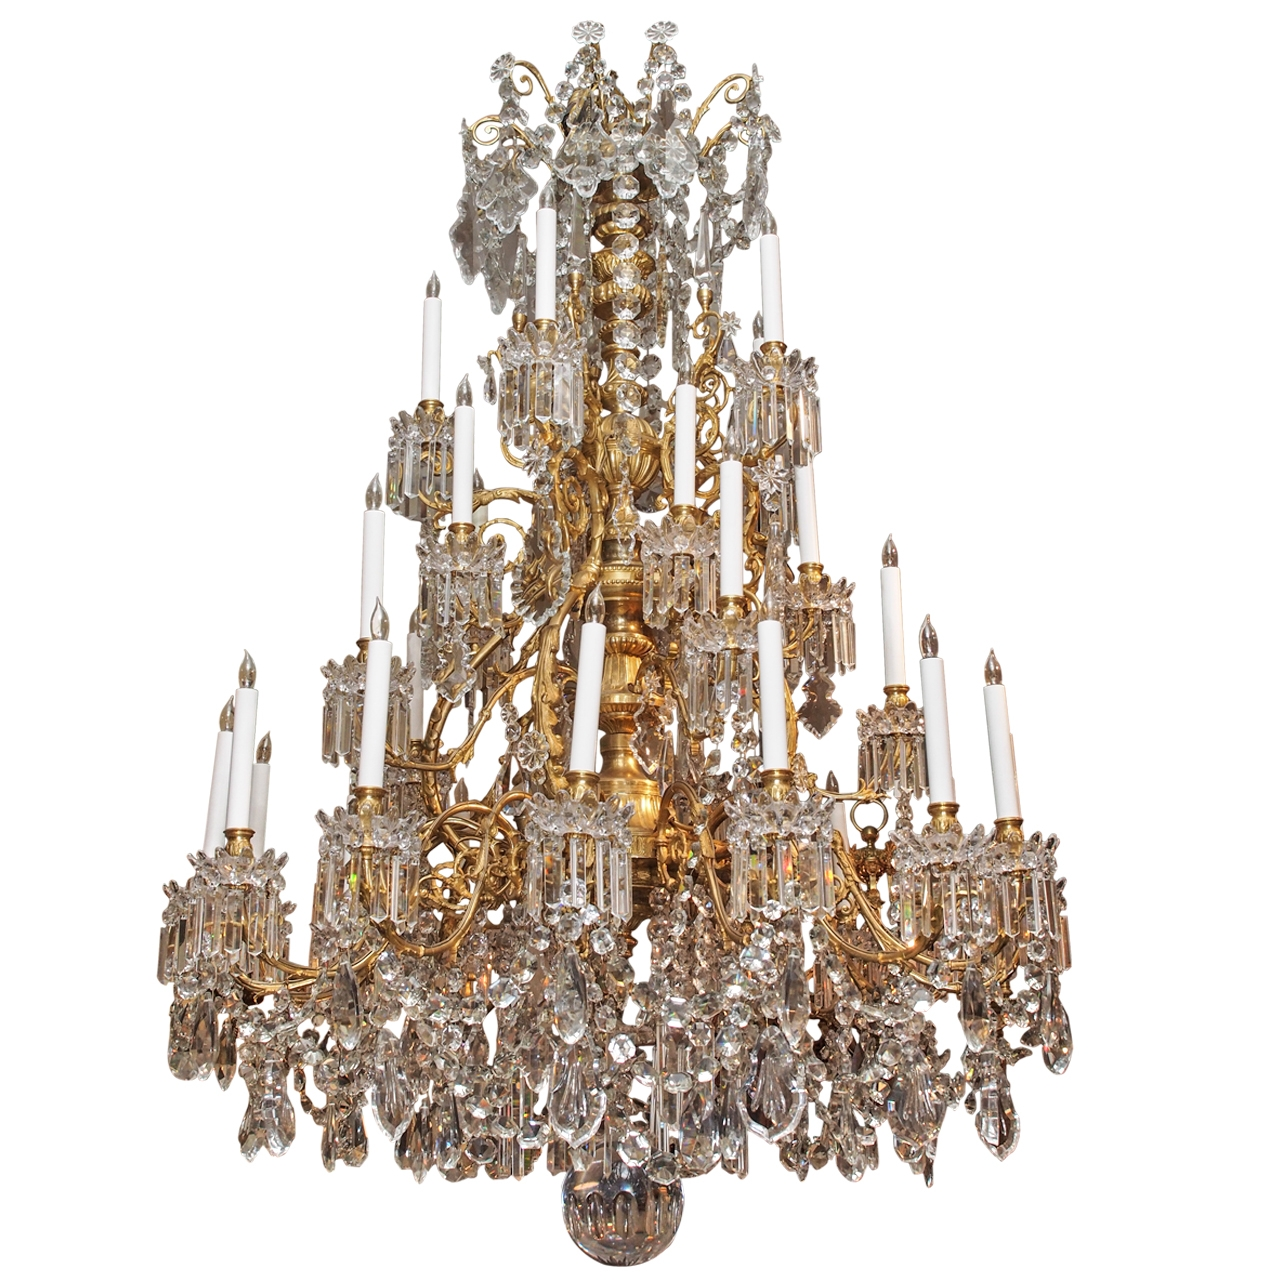 Magnificent Antique French Baccarat Crystal Chandelier Circa 1850 With Antique Looking Chandeliers (Image 14 of 15)